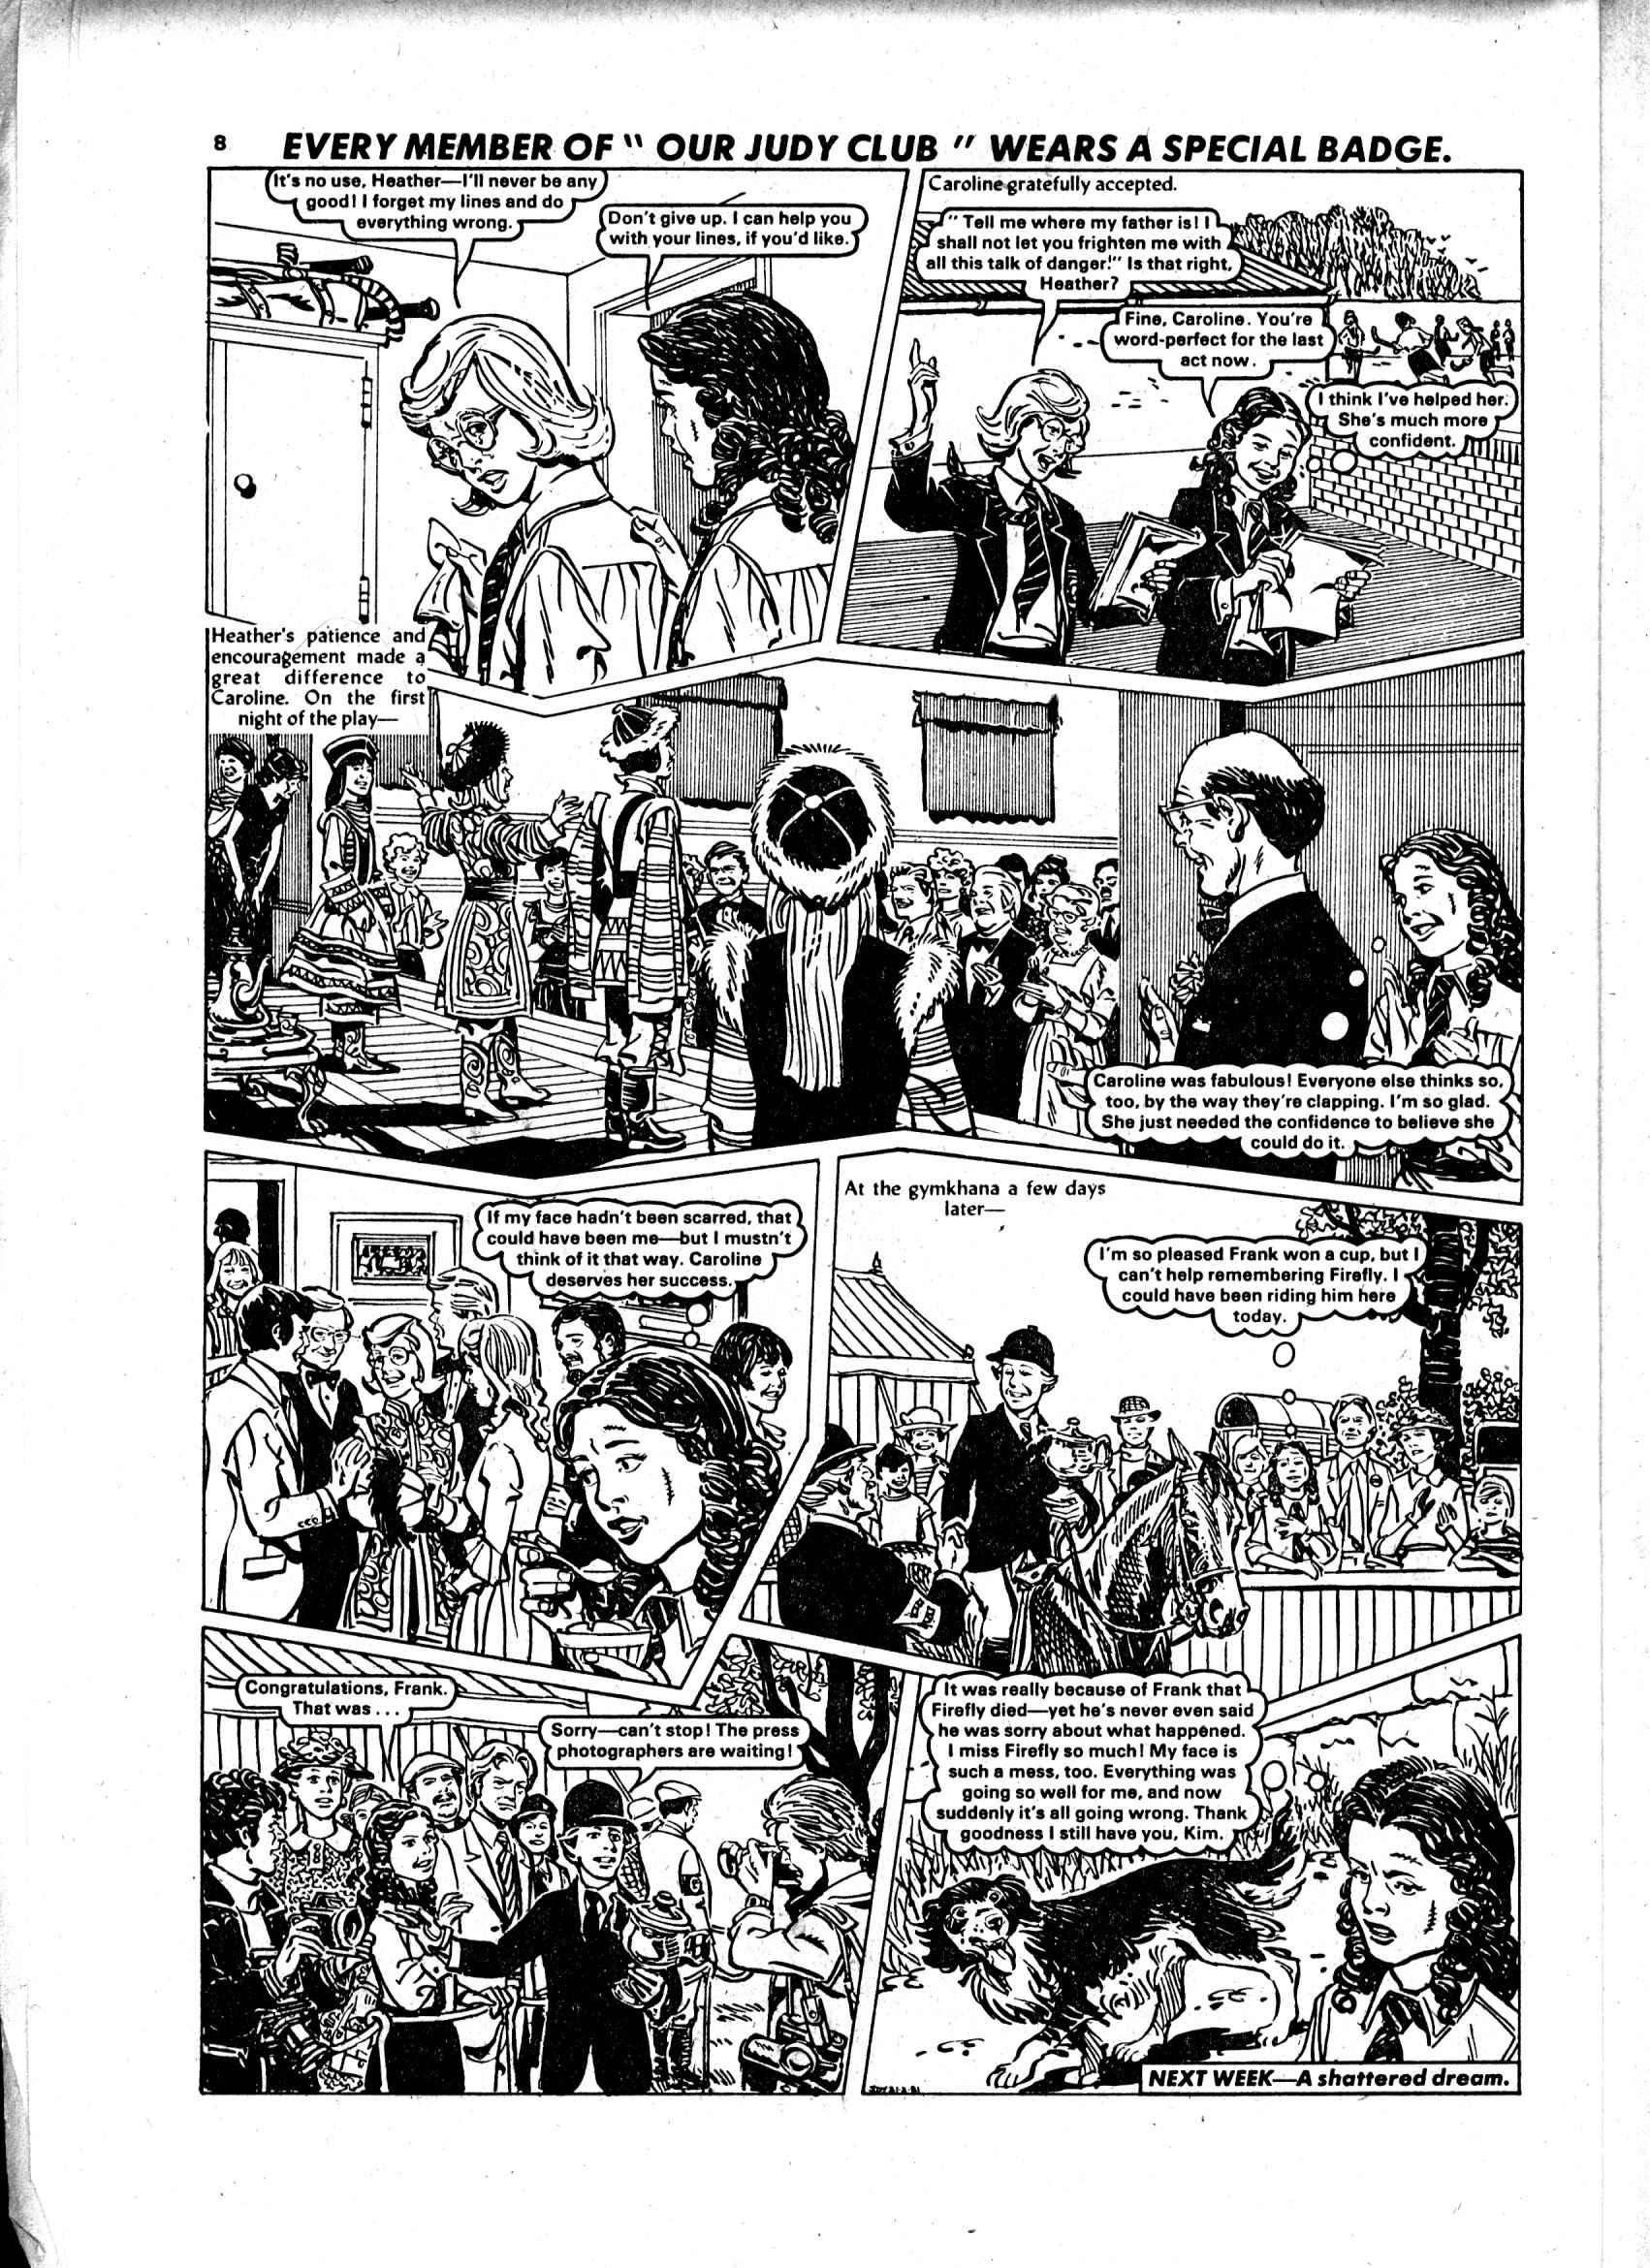 Read online Judy comic -  Issue #1102 - 8